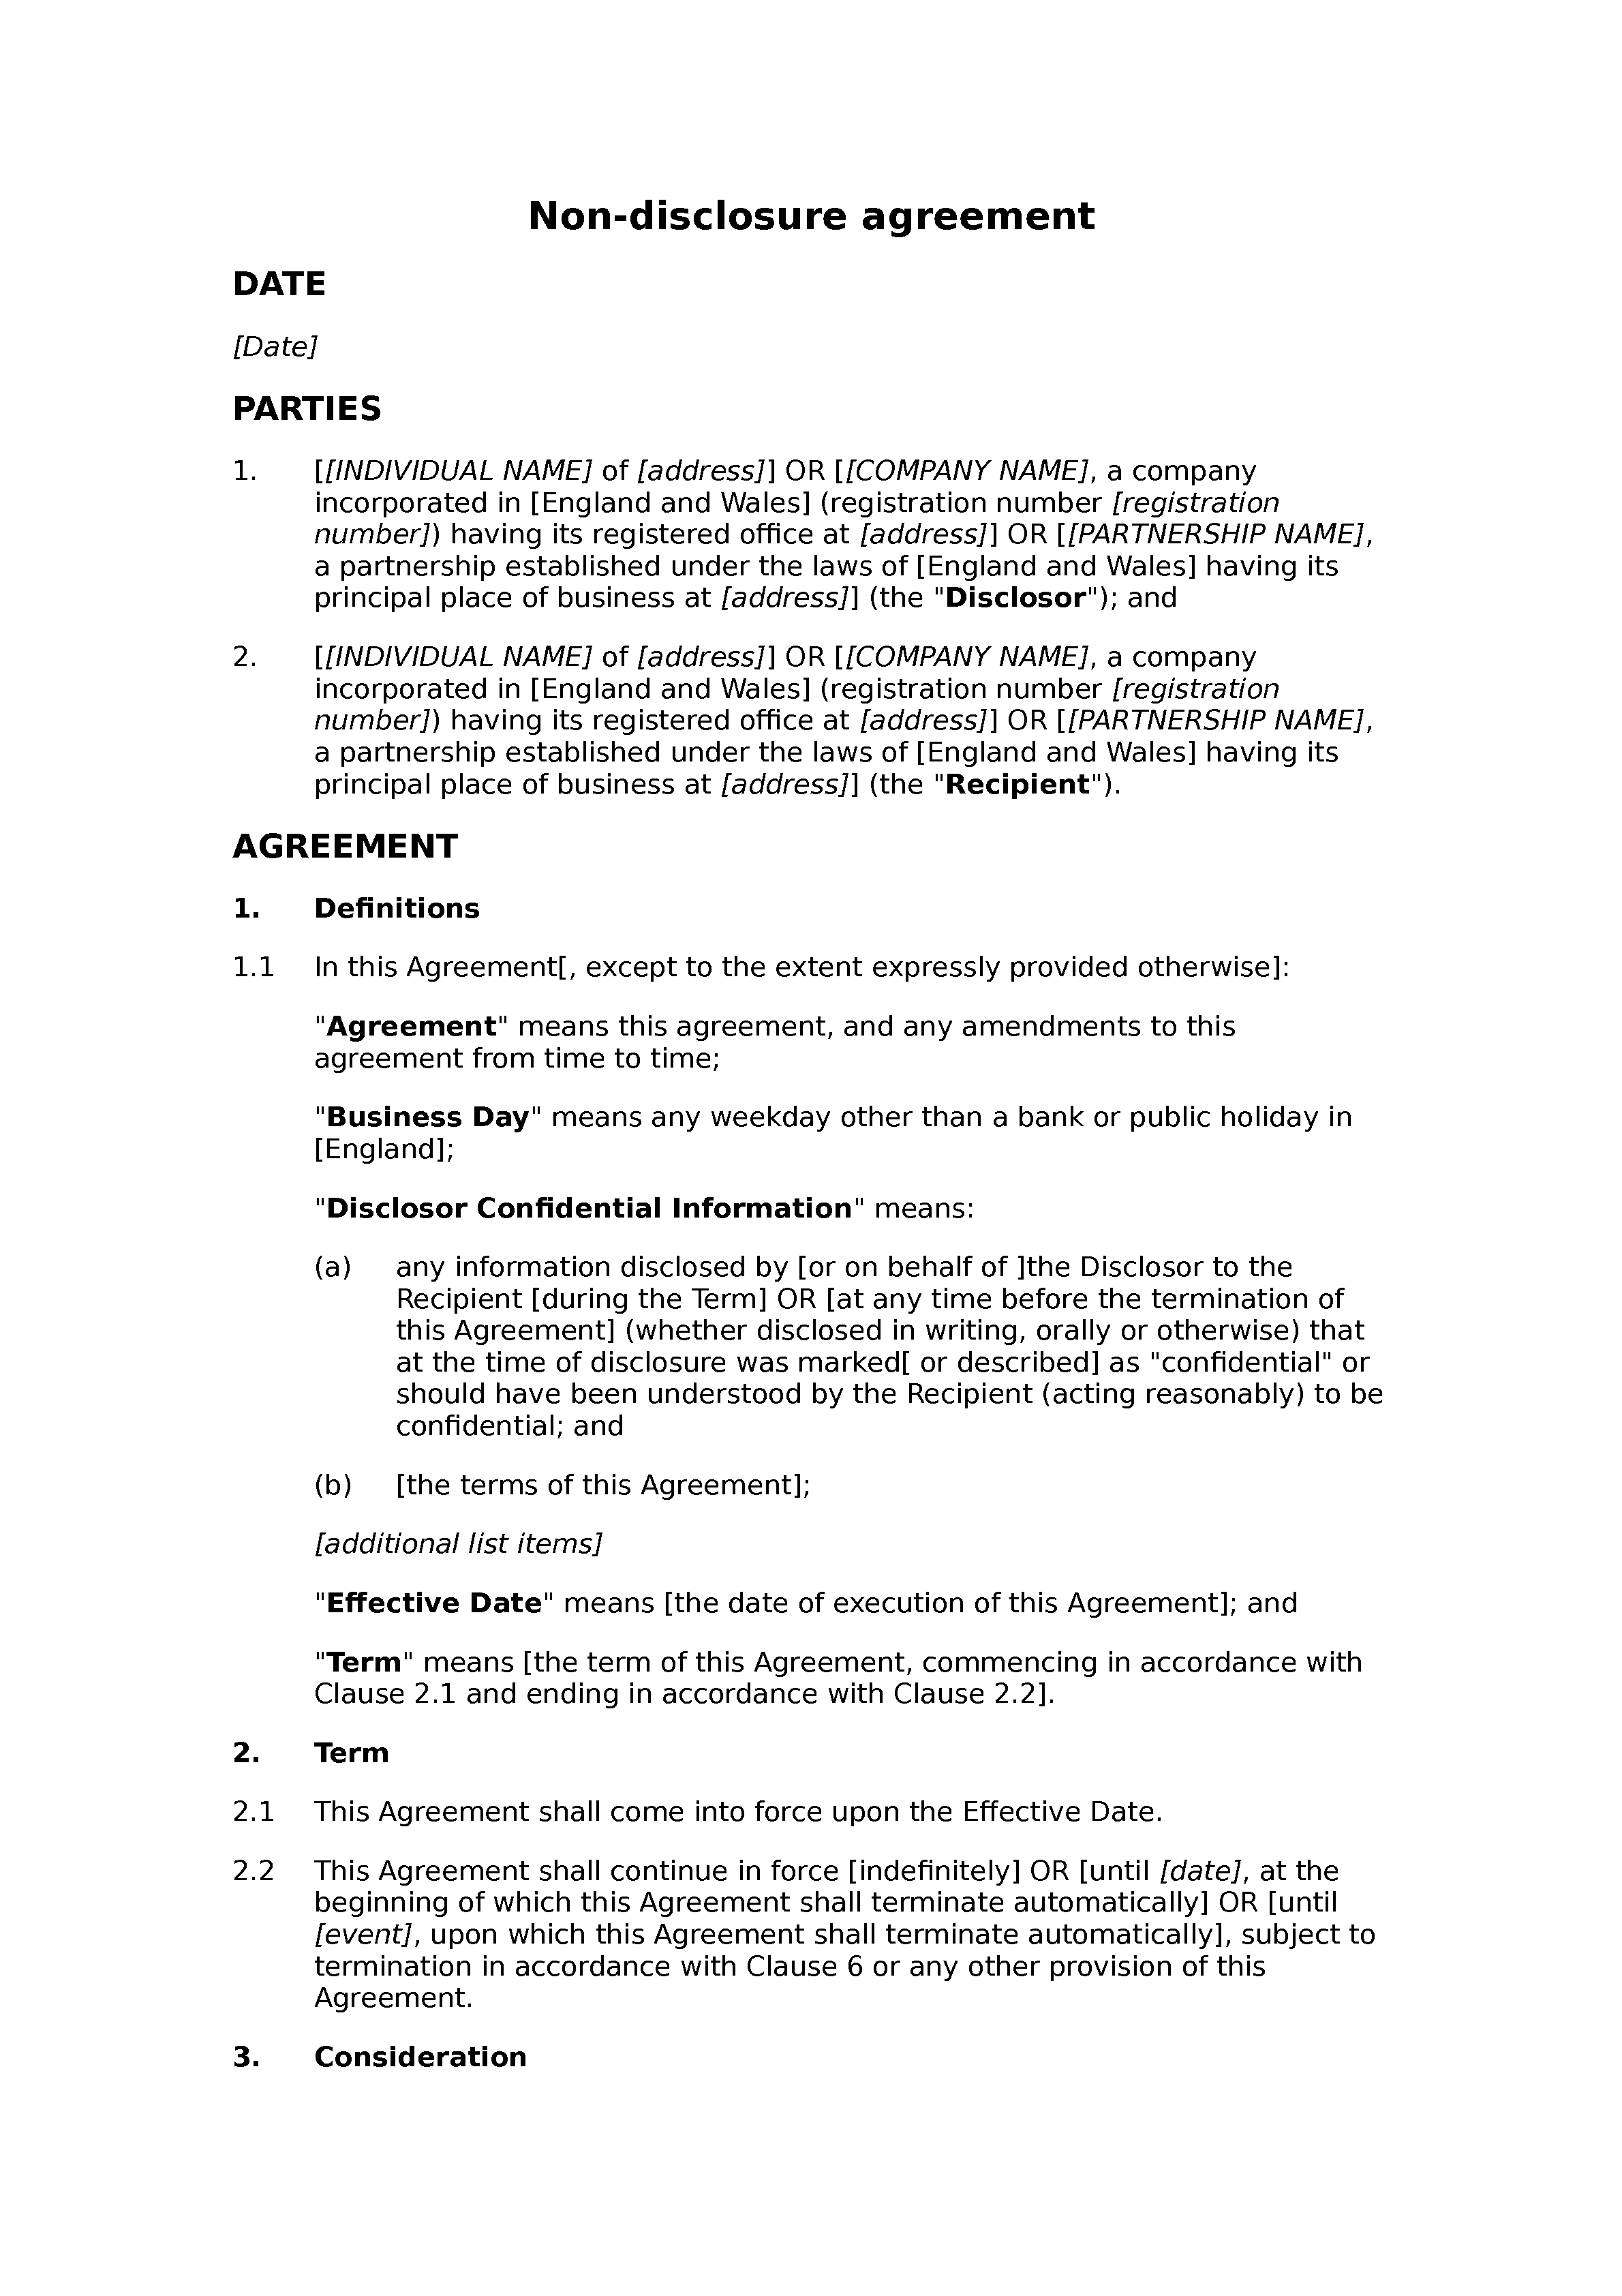 Non-disclosure agreement (unilateral, standard) document preview